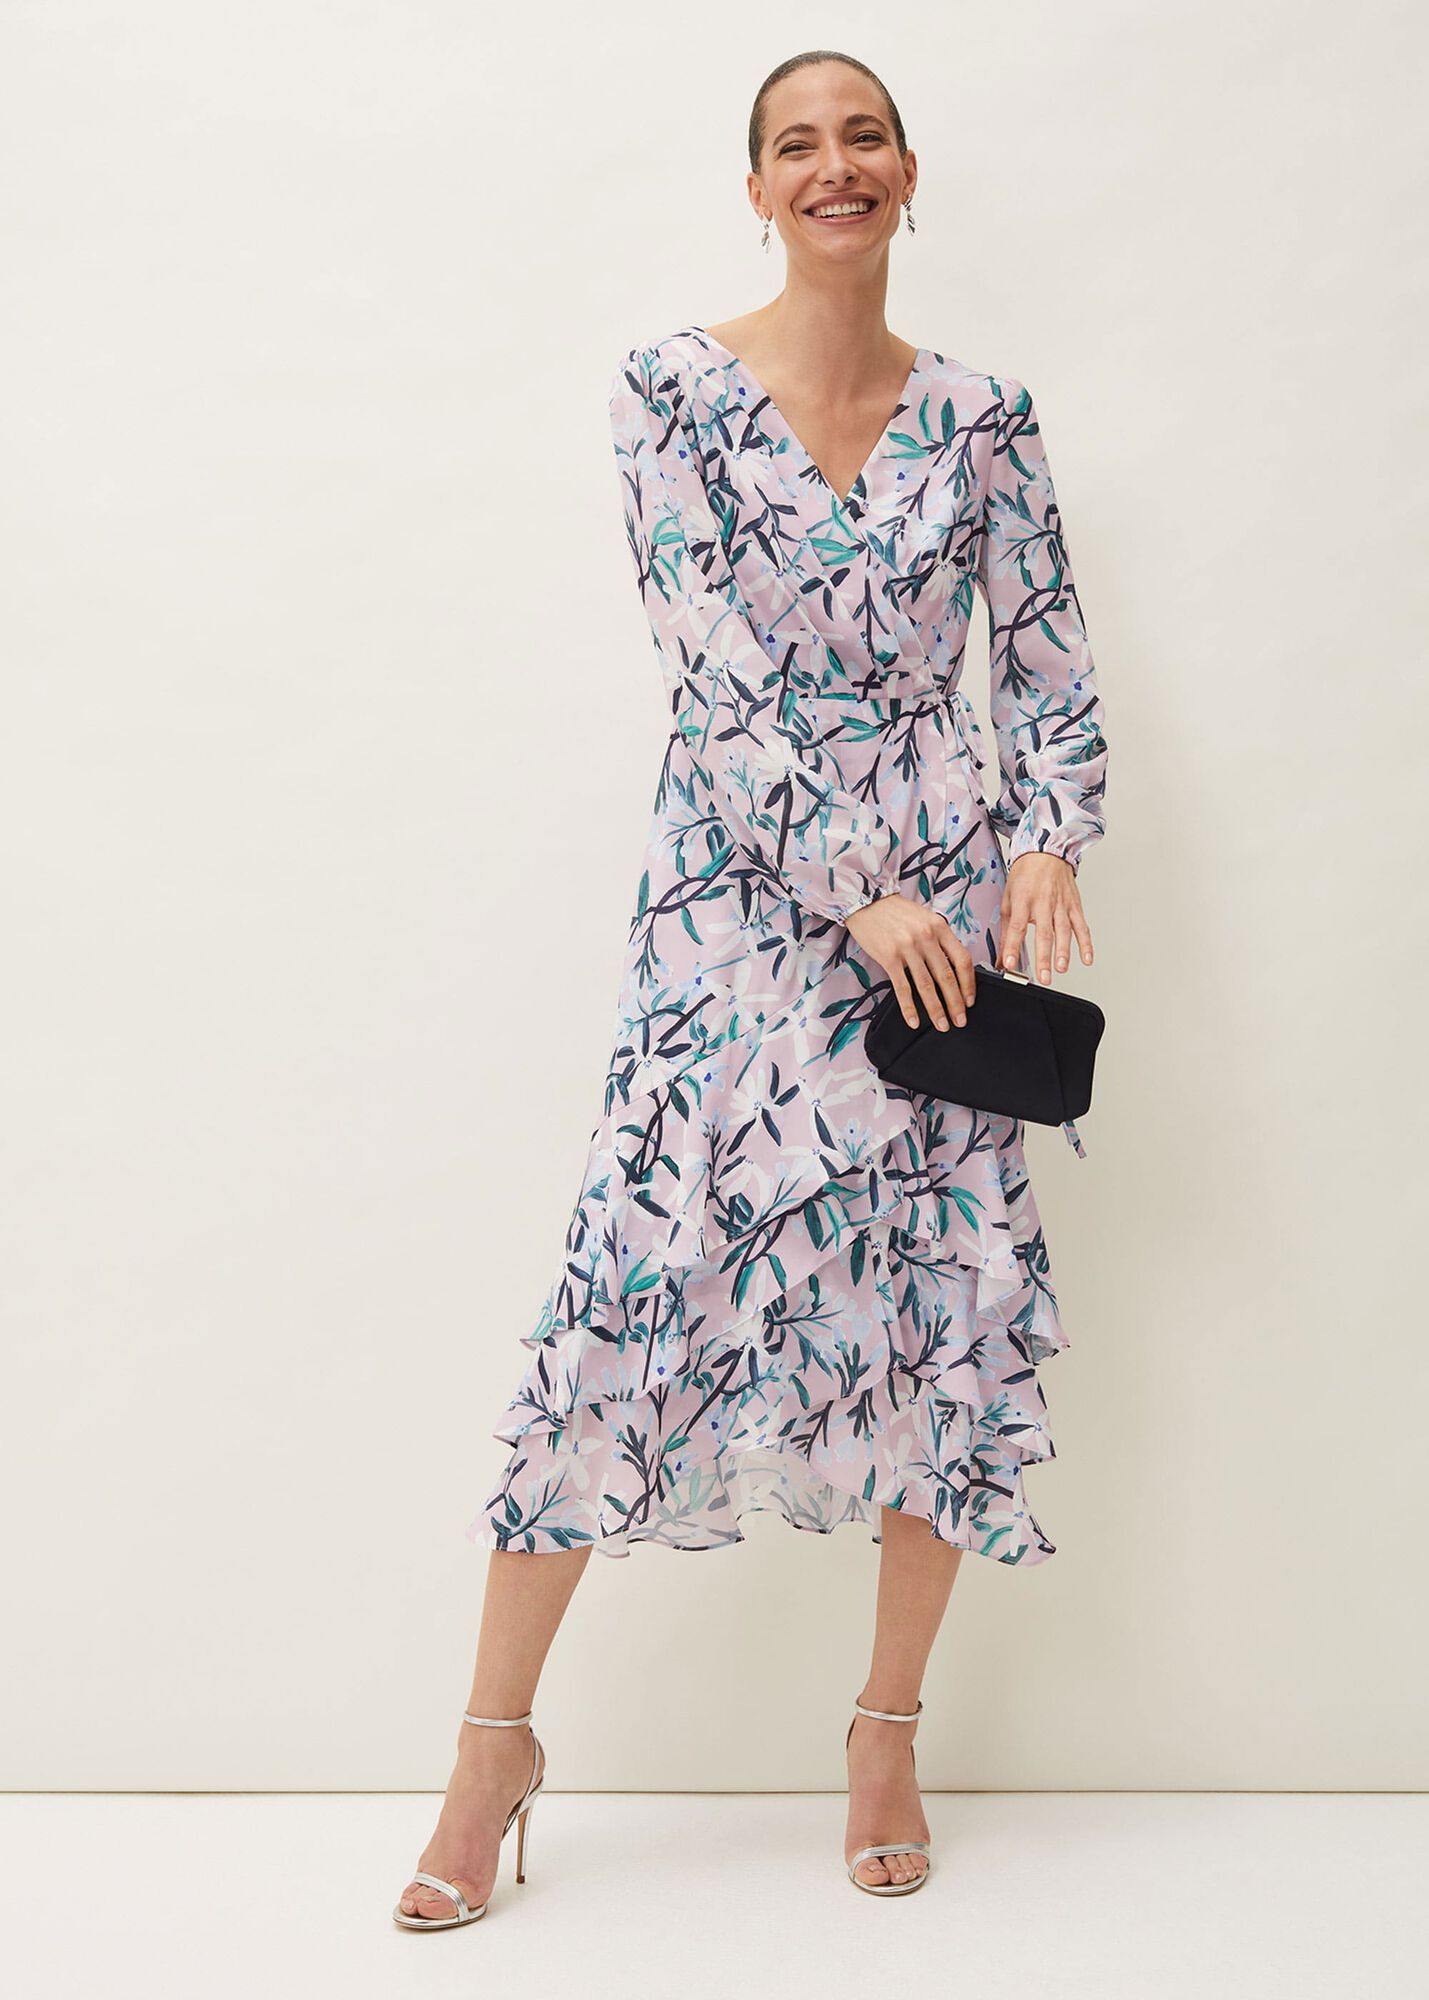 Jenna Floral Print Frill Dress Phase Eight Occasion Wear